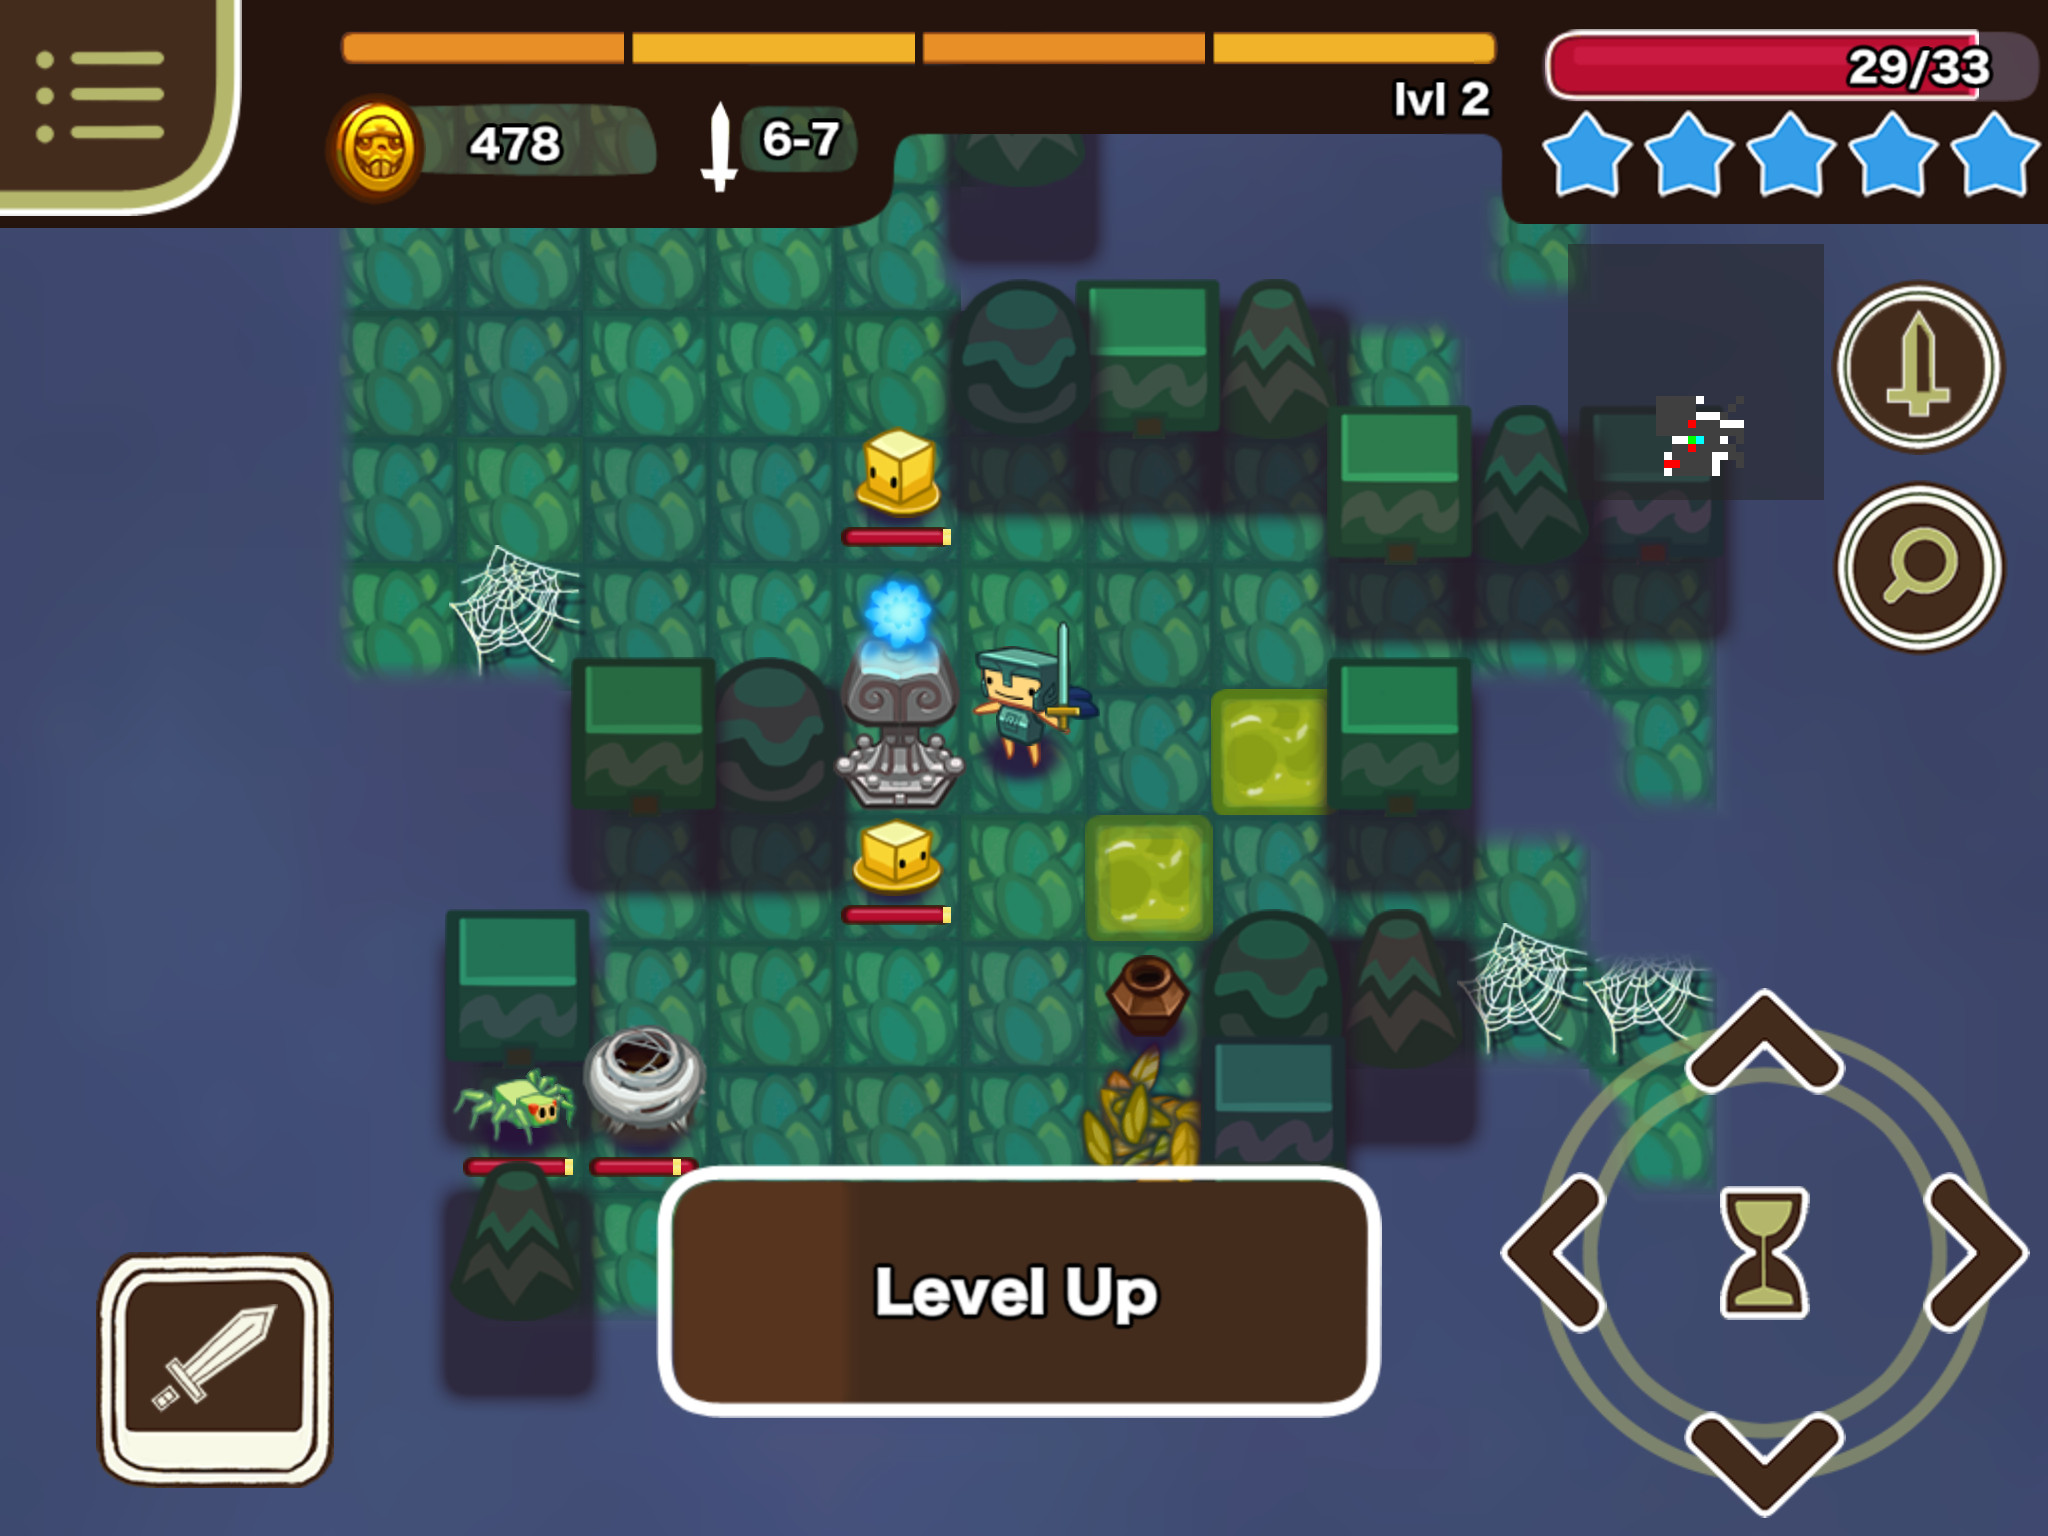 $10 roguelike Sproggiwood sold better on mobile than Steam